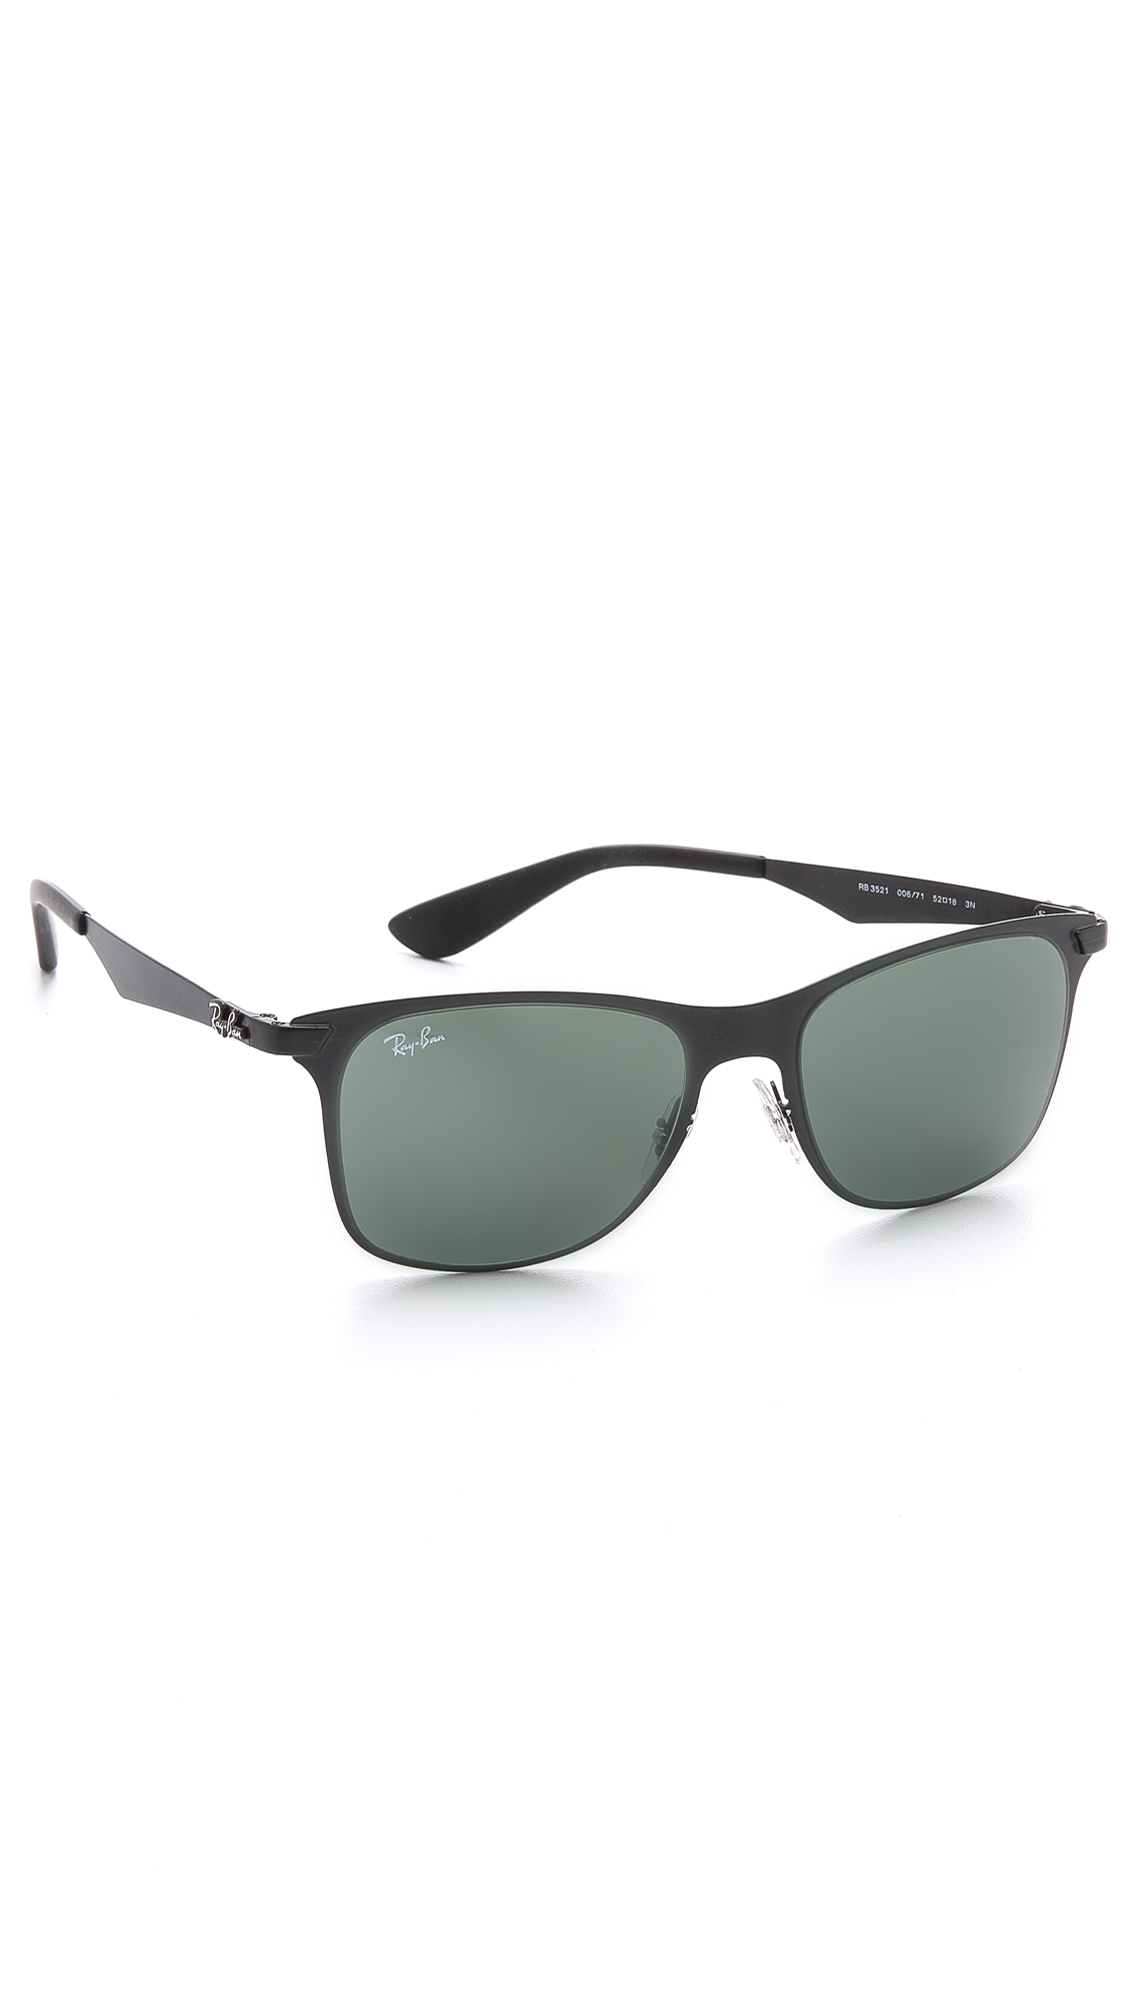 wayfarer metal frame  Ray-ban Flat Metal Wayfarer Sunglasses in Black for Men